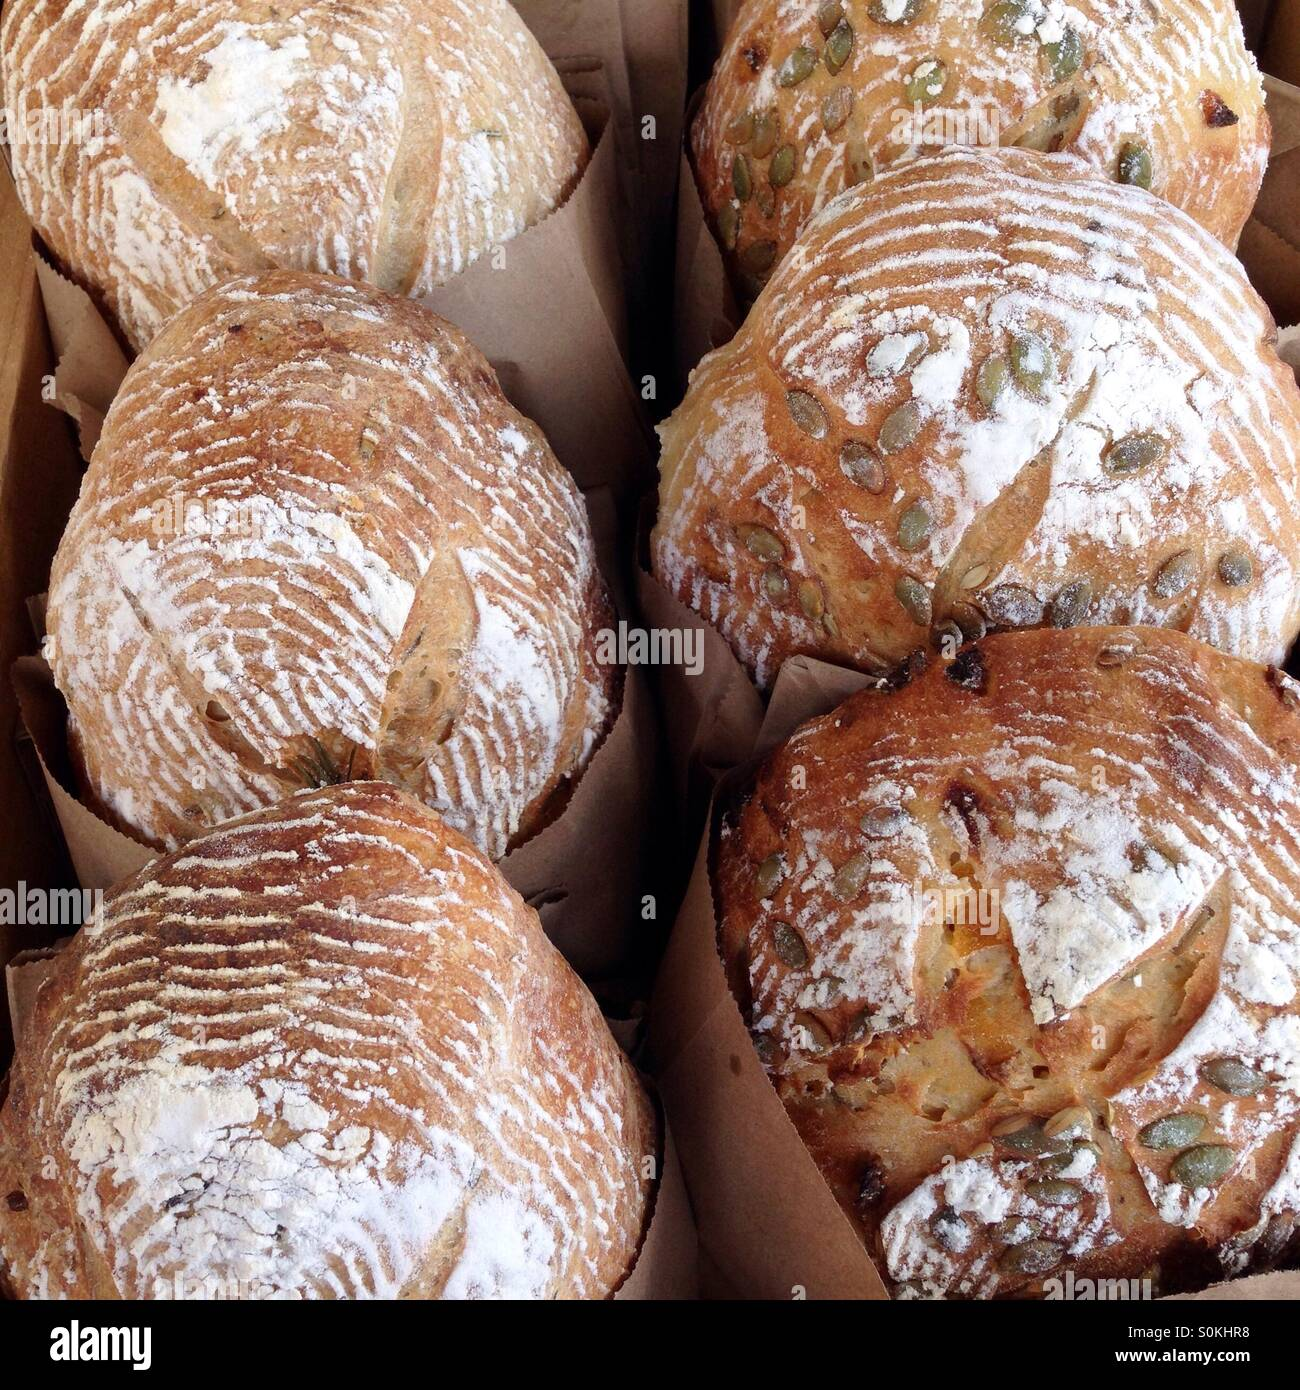 Freshly baked artisan breads with seeds and without - Stock Image